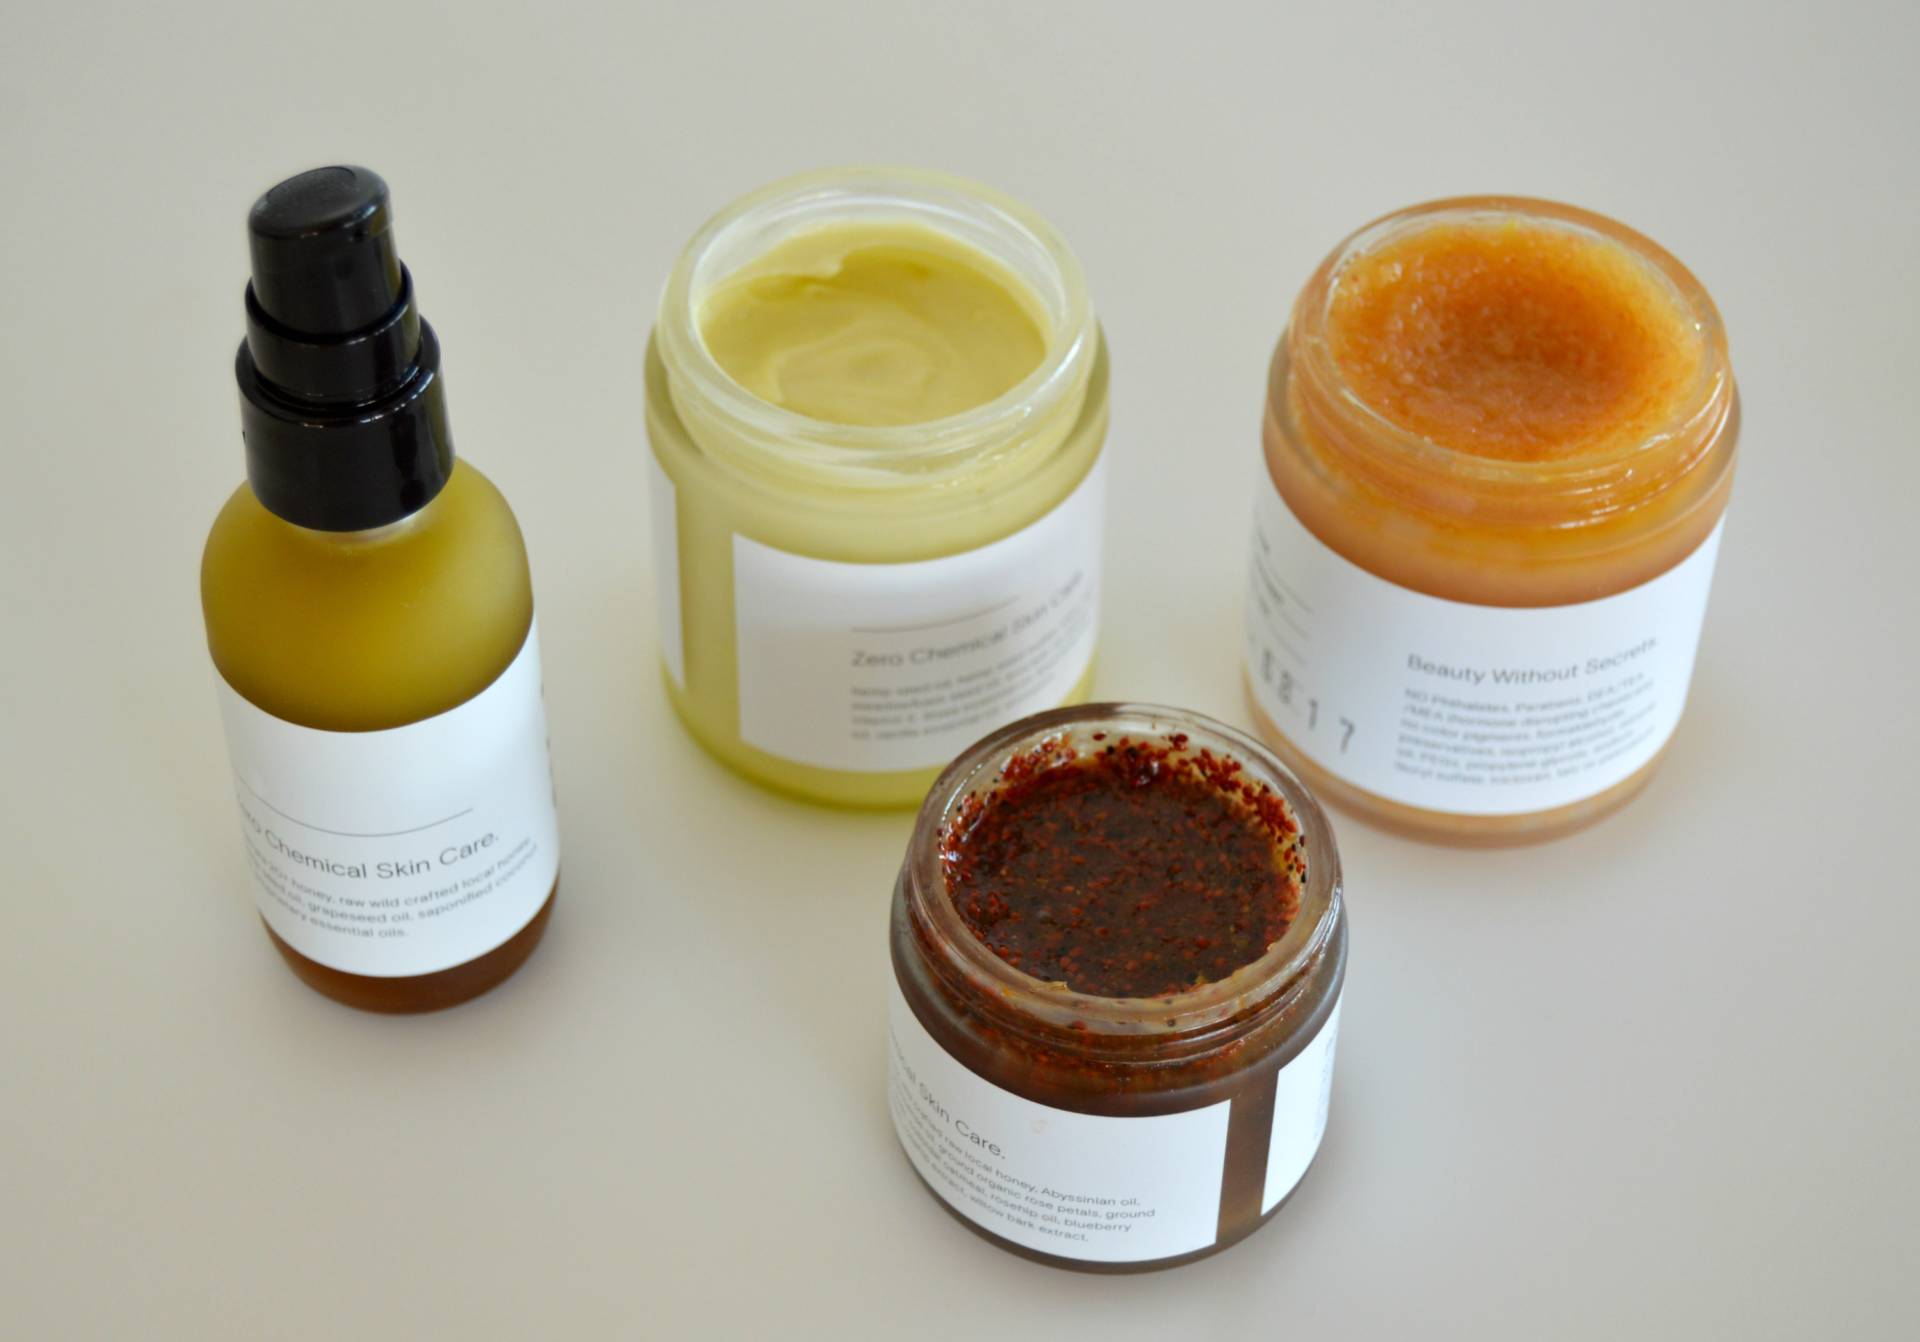 oy-l-skincare-inhautepursuit-review-ecoluxe-green-beauty